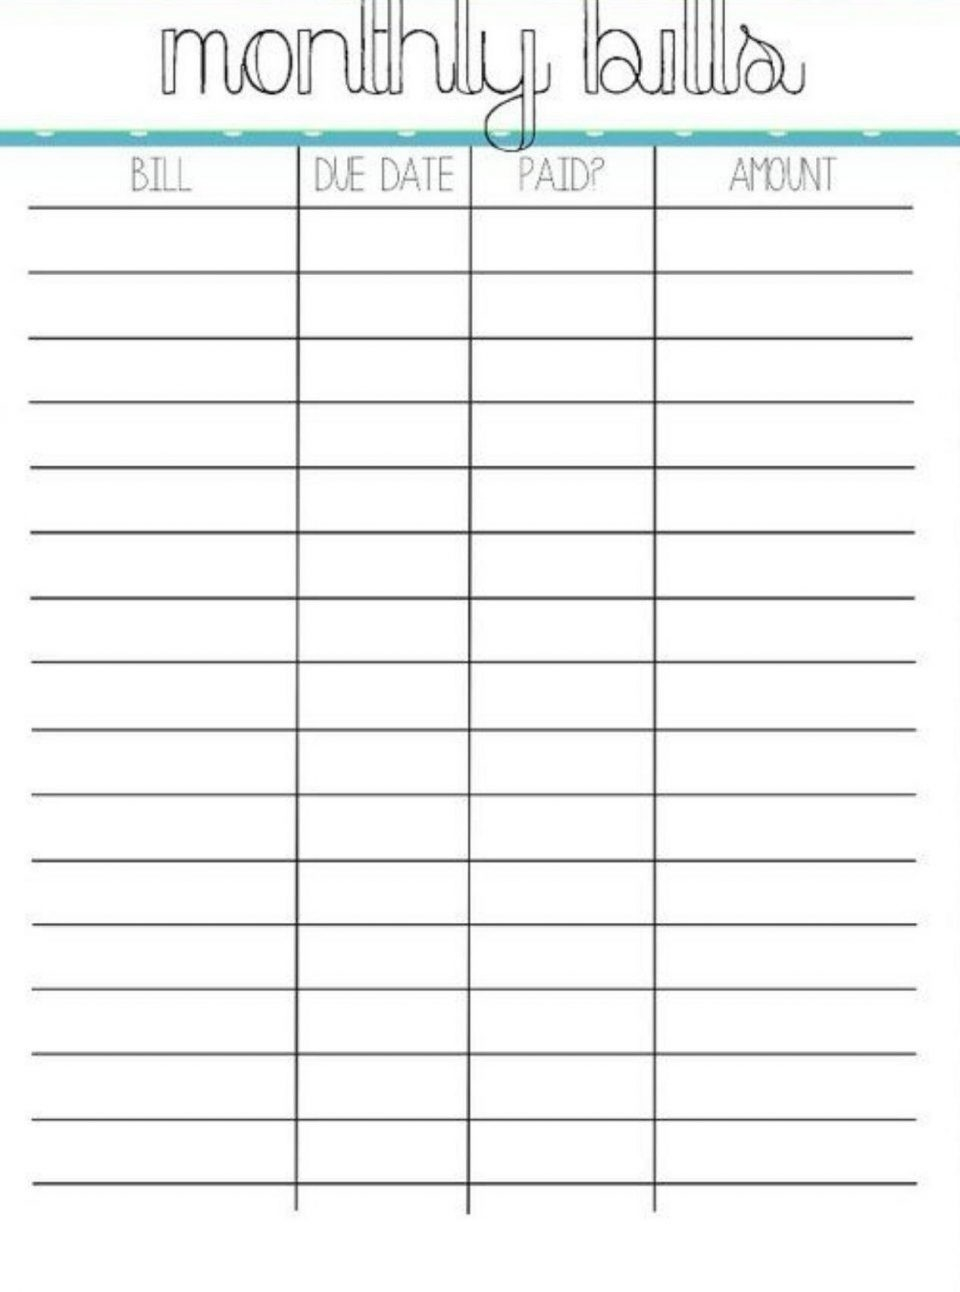 Monthly Bill Sample With Free Printable Organizer Template-Printable Monthly Billing Chart